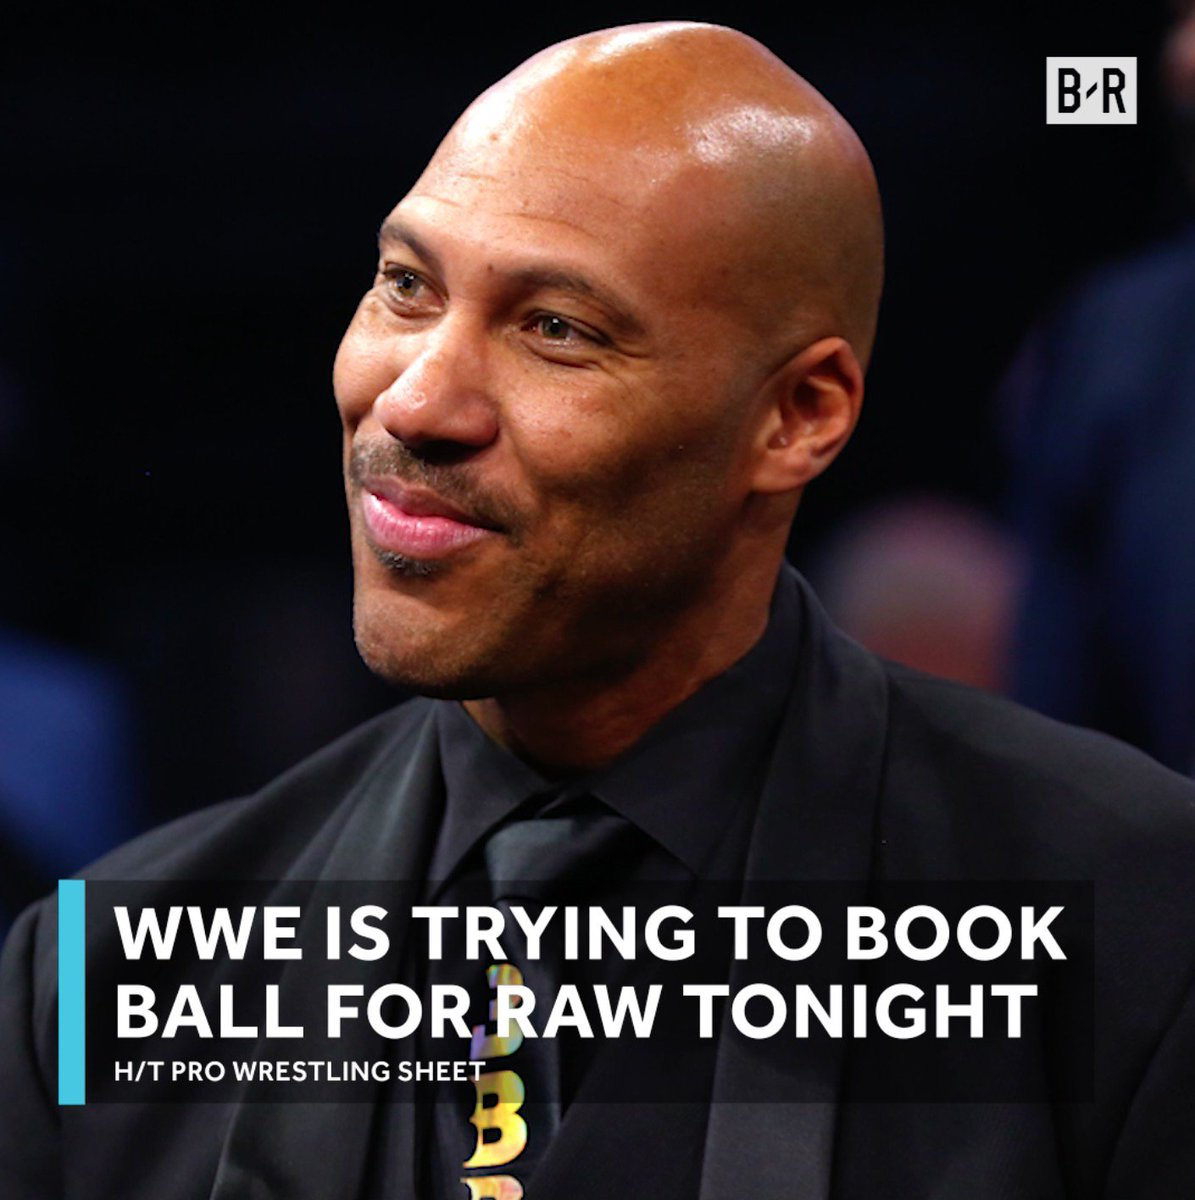 LaVar Ball on Raw would be must-see TV (➡️ @Jeep) https://t.co/HBQIl44...